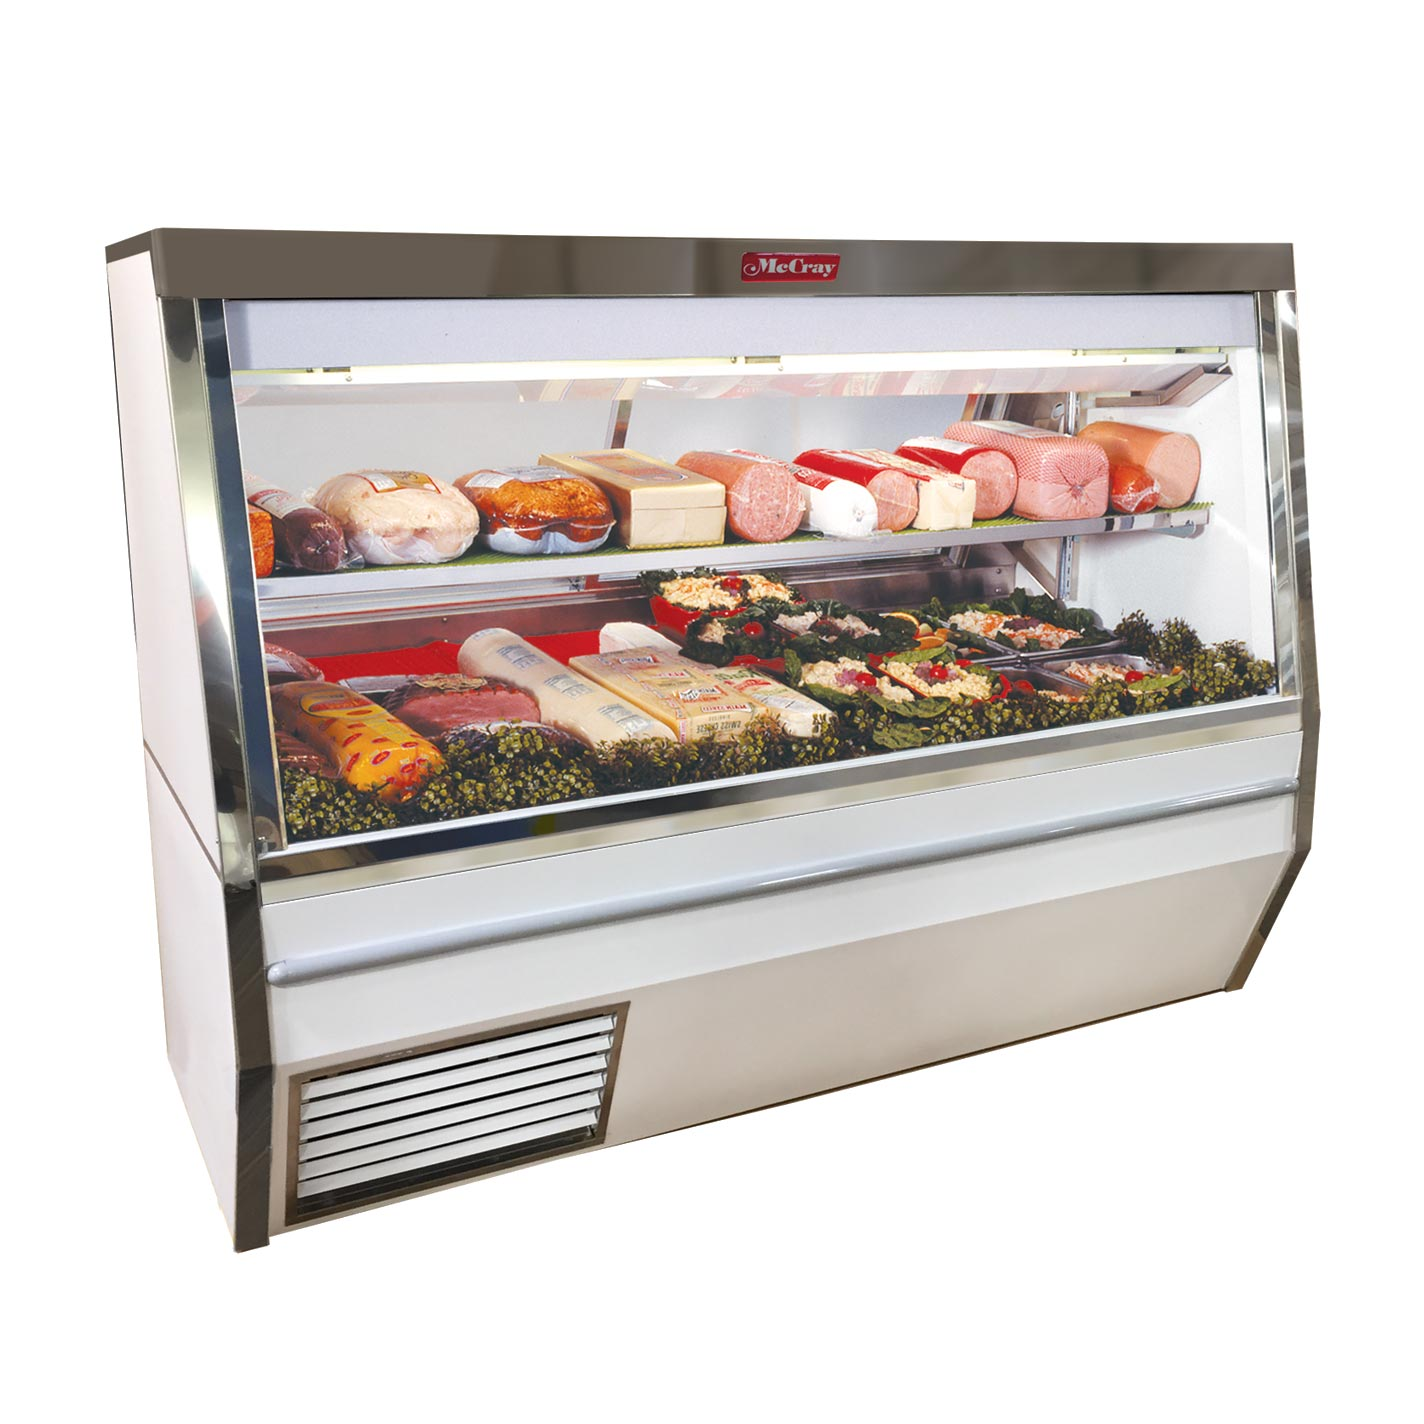 Howard-McCray R-CDS34N-4-S-LED display case, refrigerated deli